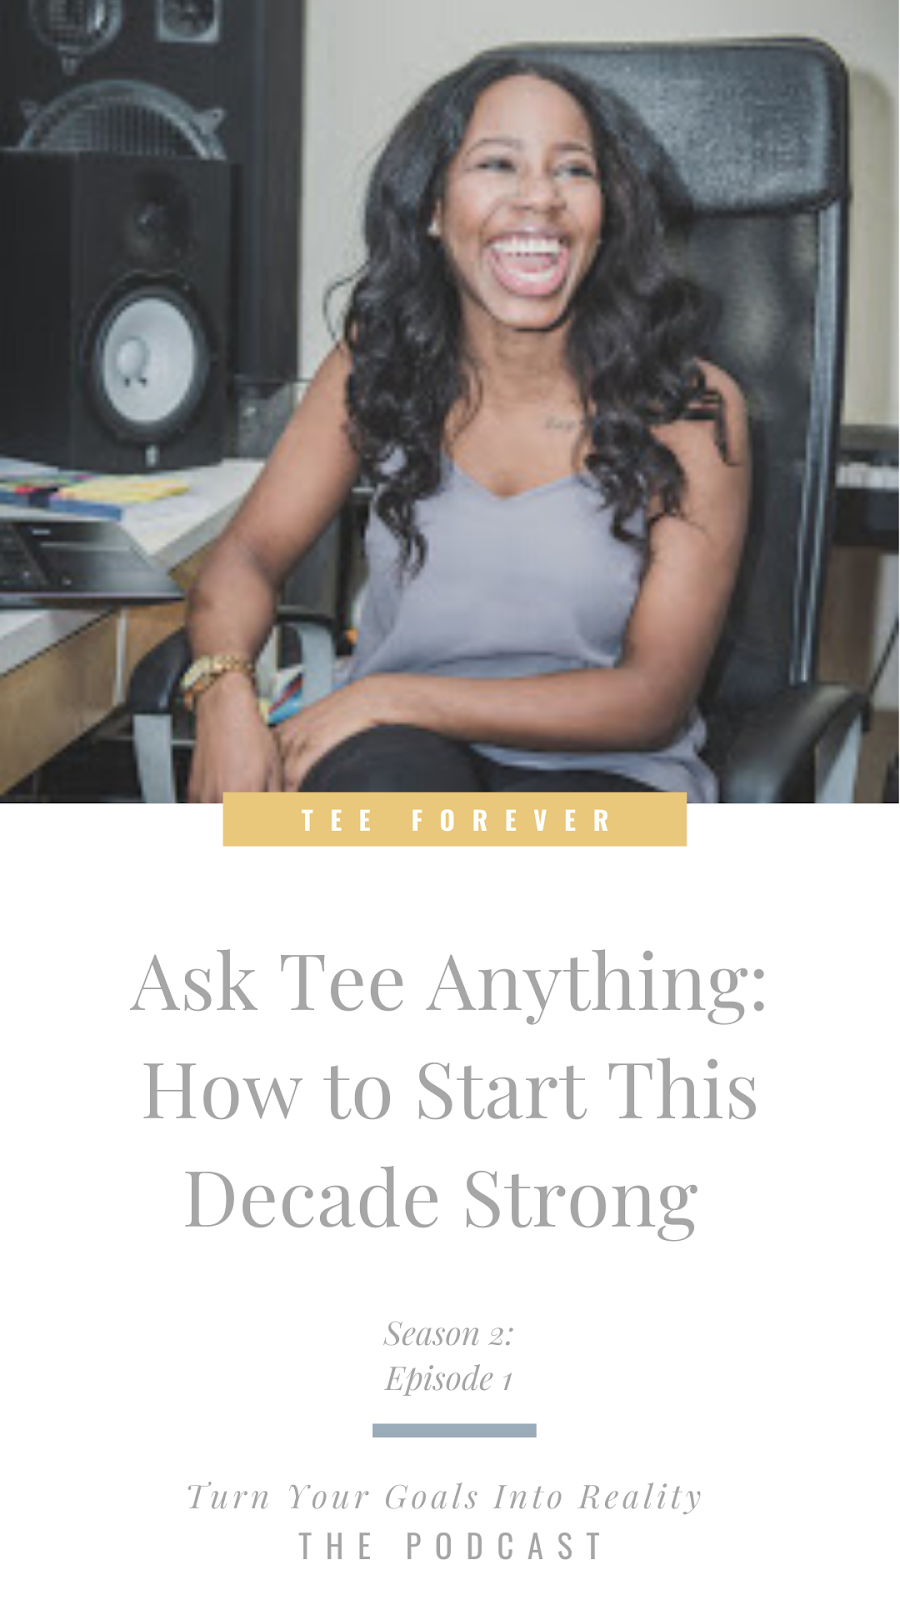 Ask Tee Anything: How to Start This Decade Strong